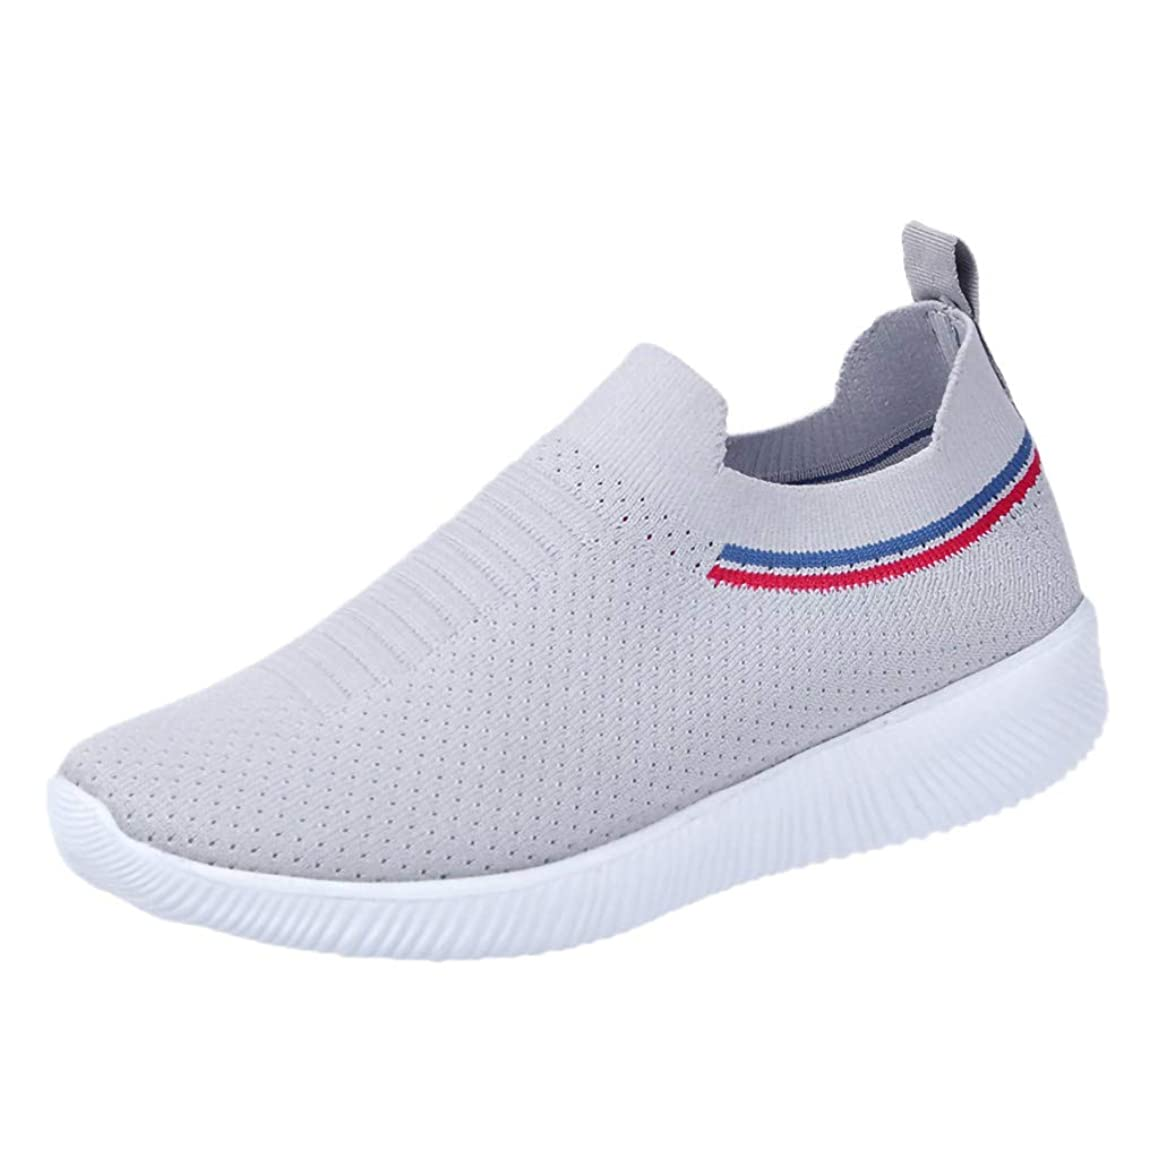 Women's Fashion Sneakers Breathable Mesh Casual Sport Shoes Comfortable Walking Shoes